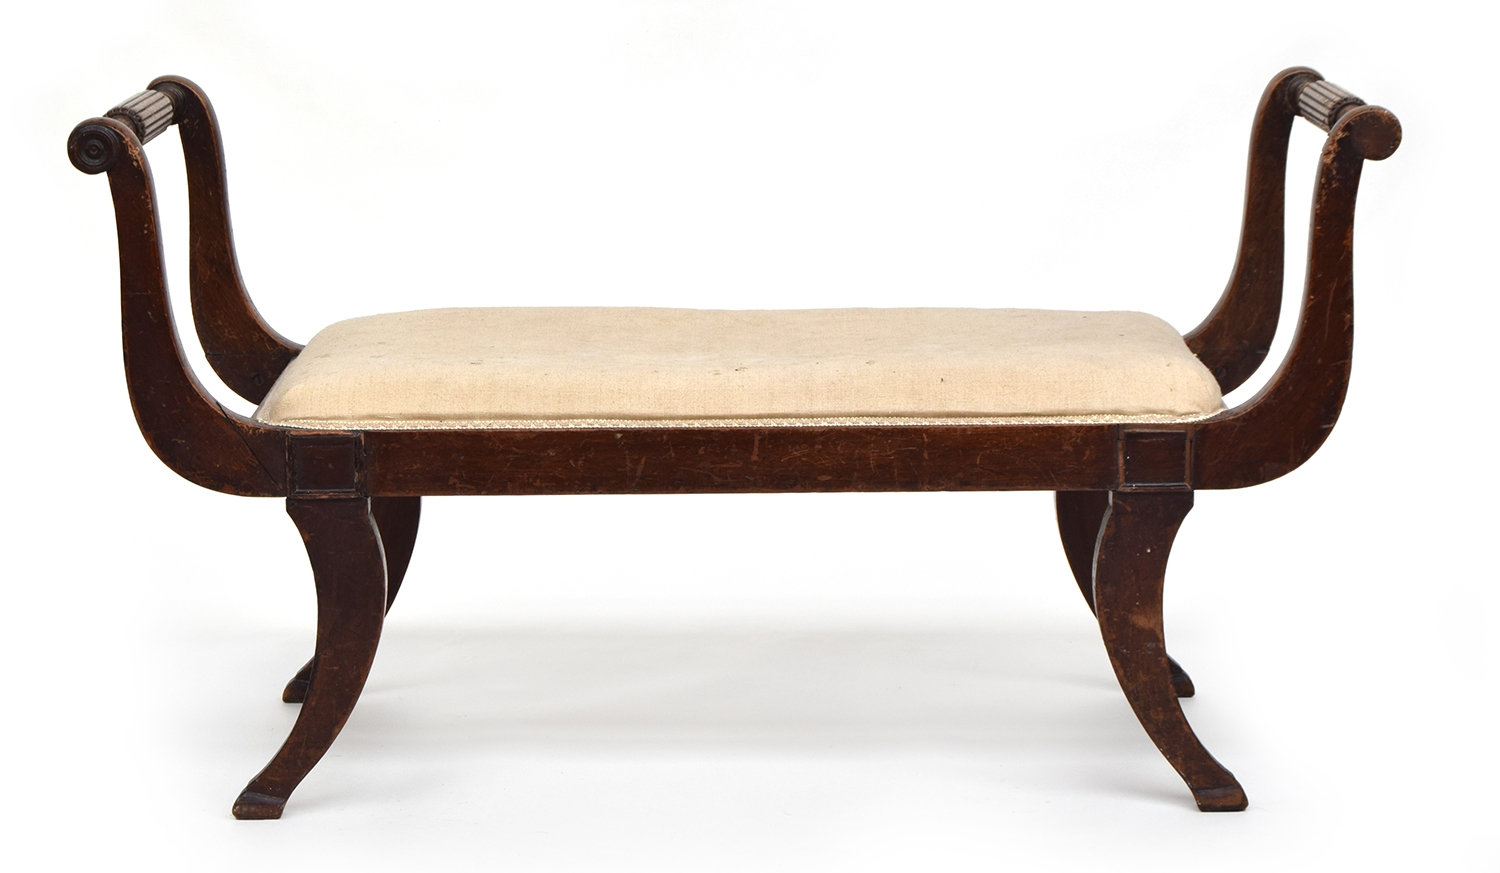 A large Regency upholstered duet stool, the reeded arms on swept supports, 117cm wide